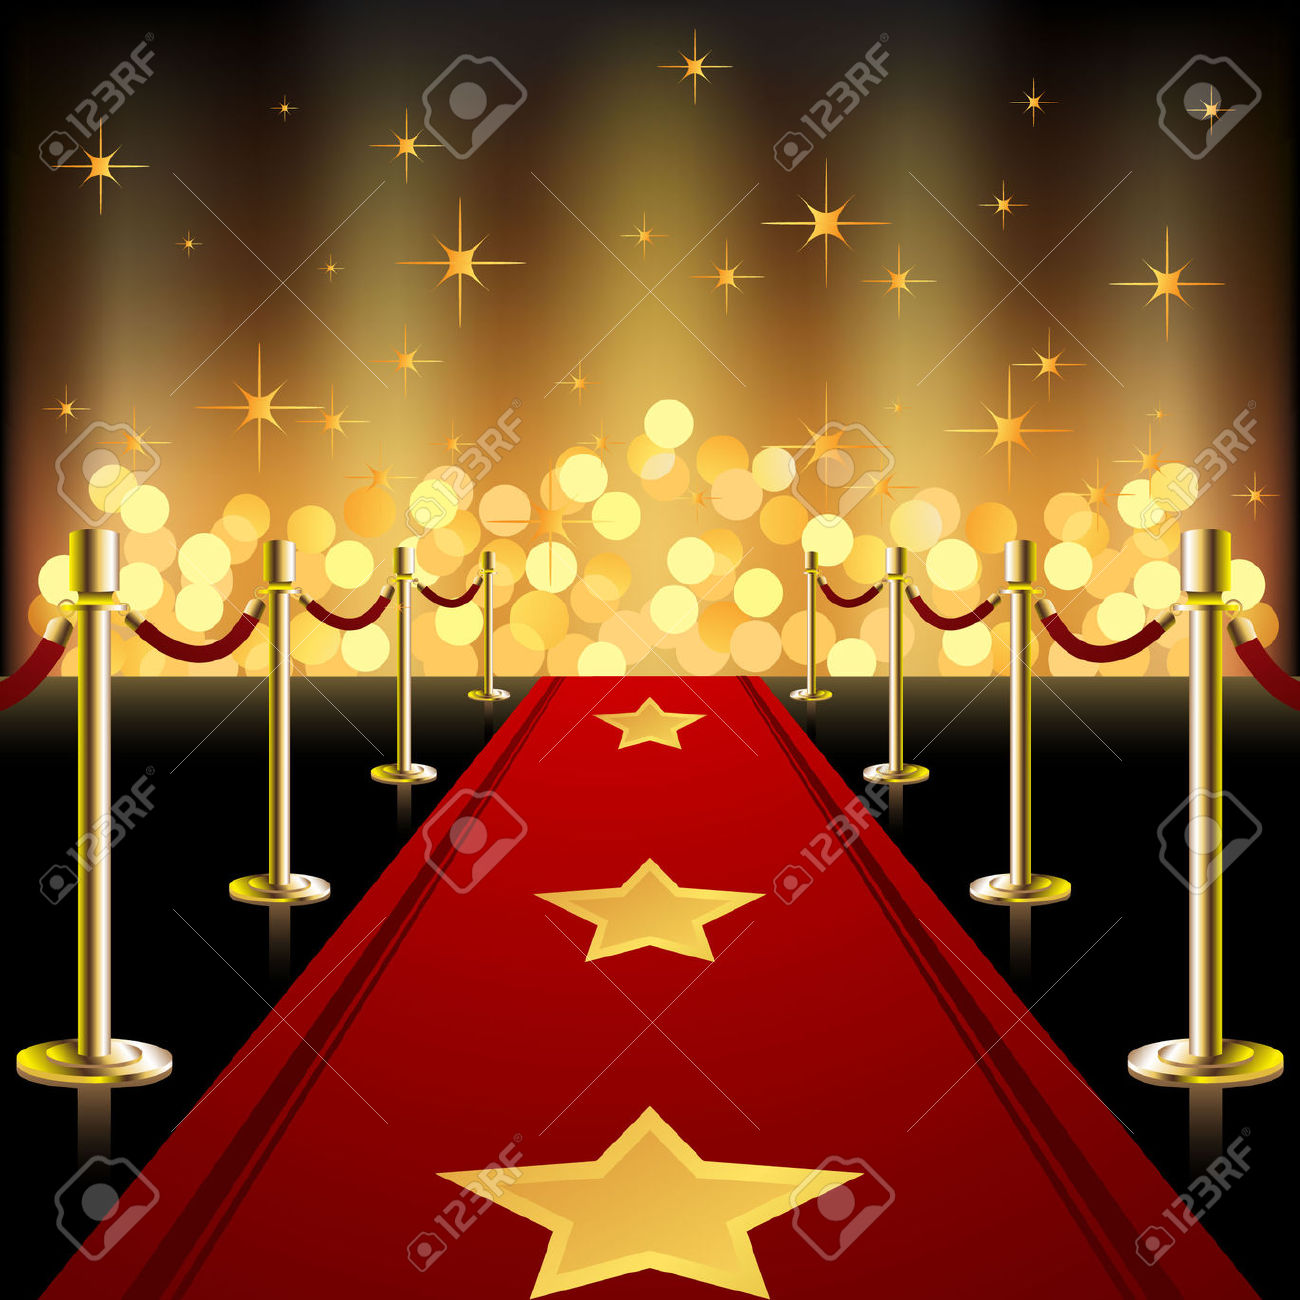 Red Carpet Royalty Free Cliparts, Vectors, And Stock Illustration.